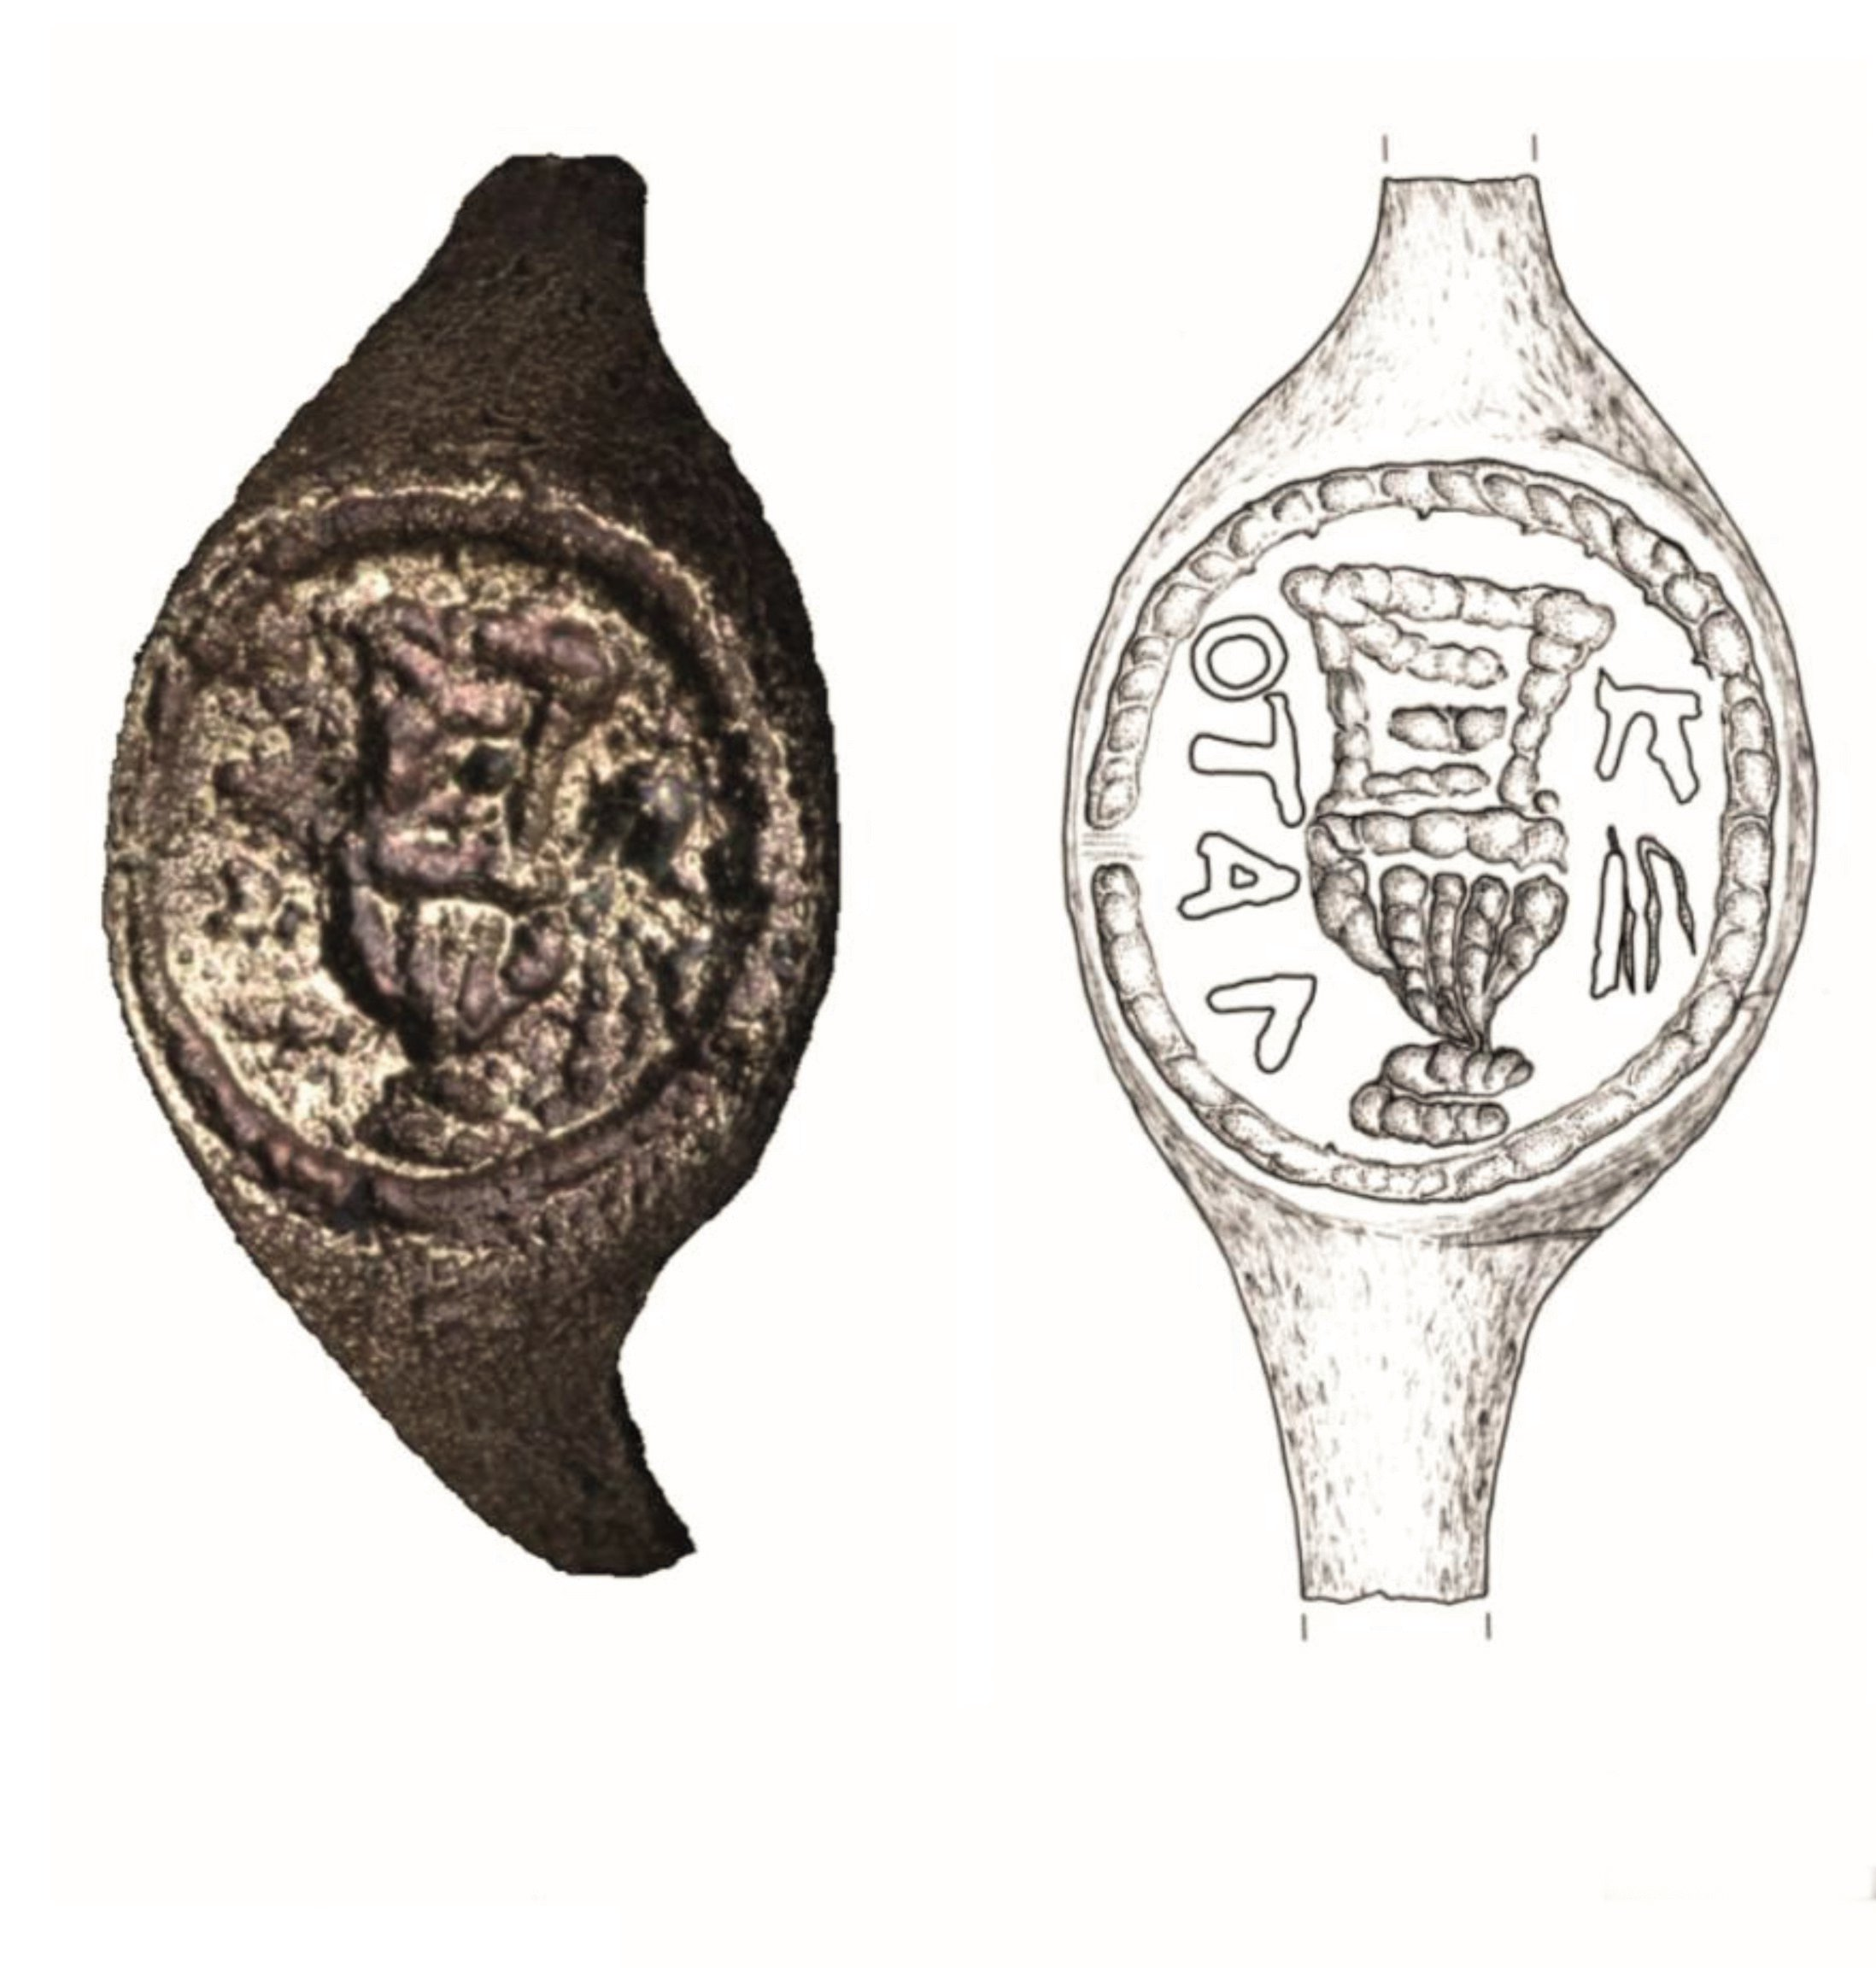 epa07203129 A handout photo and sketch made available by the Hebrew University of Jerusalem on an unknown date in 1969 shows the image (L) of a copper ring and a sketch (R) of what the ring may have looked like, that was found in 1969 at a fortress built by King Herod near the West Bank city of Bethlehemthe (issued 02 December 2018). The ring, which is made from copper-alloy and was found at the fortress, bears the inscription 'of Pilatus' which experts believe refers to the Pontius Pilate. EPA/HEBREW UNIVERSITY OF JERUSALEM / HANDOUT HANDOUT EDITORIAL USE ONLY/NO SALES